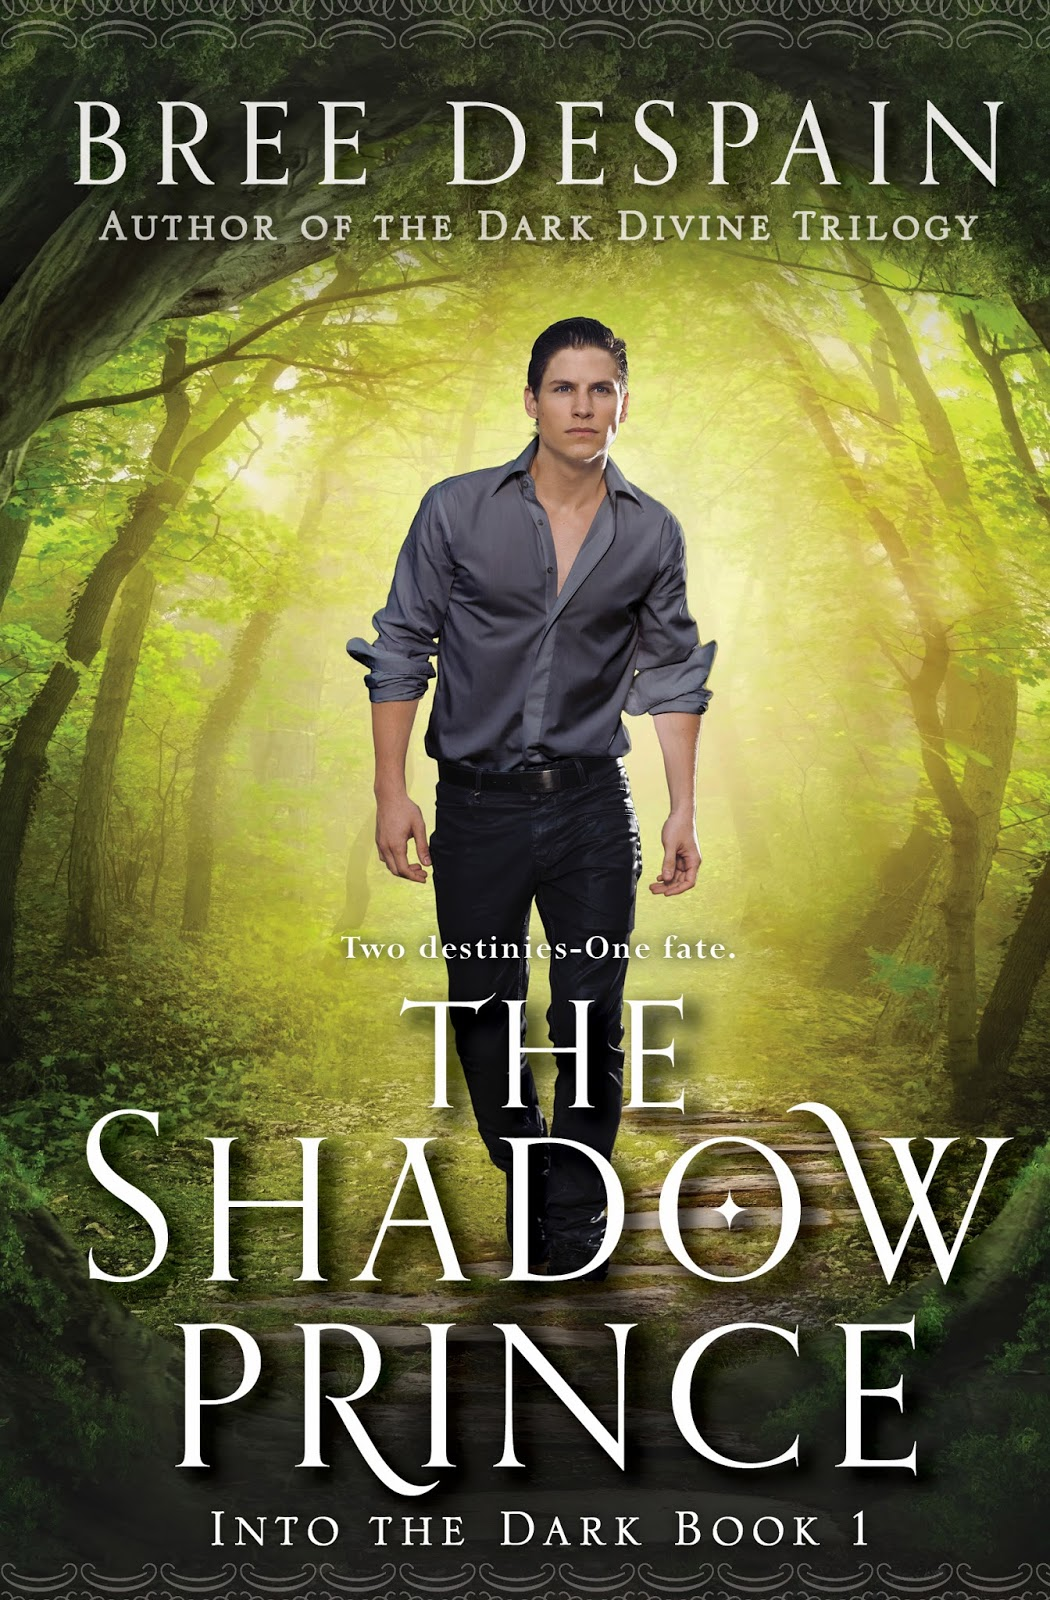 The Shadow Prince Giveaway